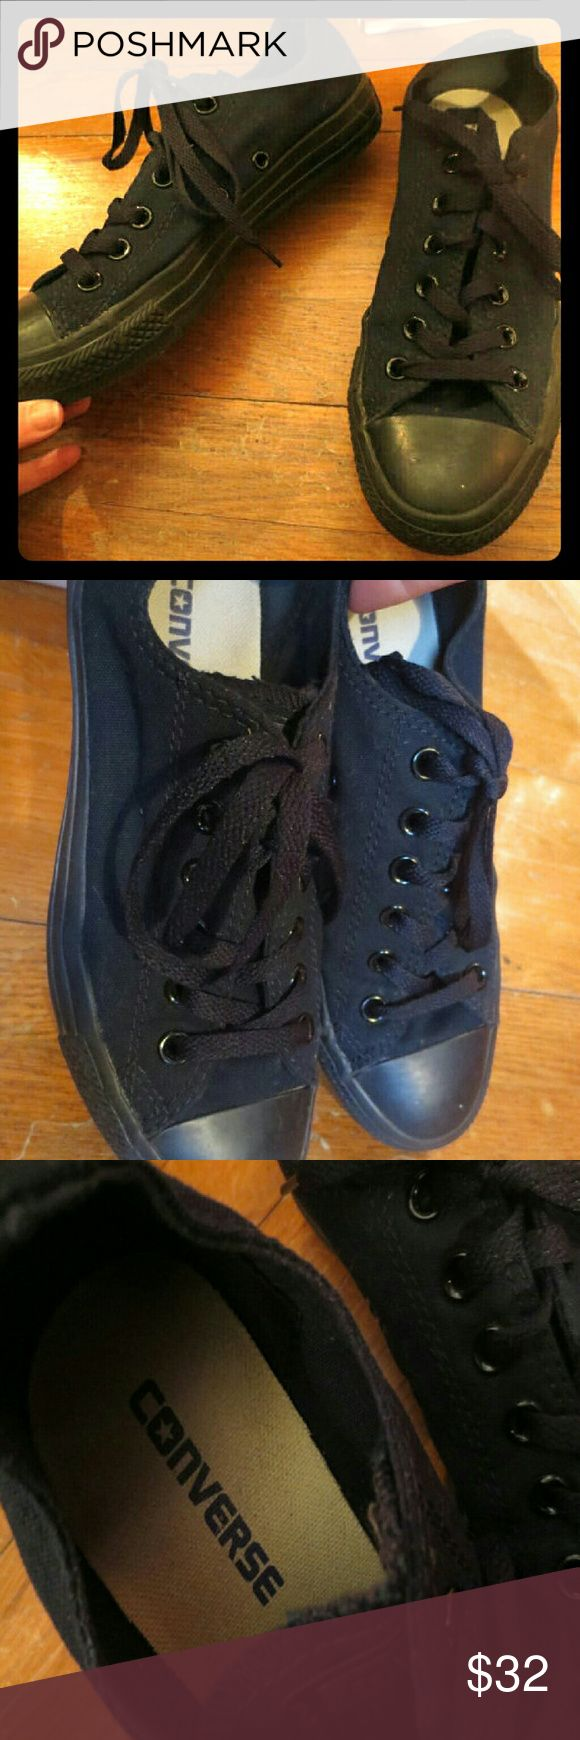 Ladies Converse All Stars Black Lowtop Sneakers 7 This is a pair of all black low top sneakers by Converse.  They appear unworn!   All black, including the soles.   They are marked a Women's U.S. size 7,or U.K. size 5. Converse Shoes Sneakers